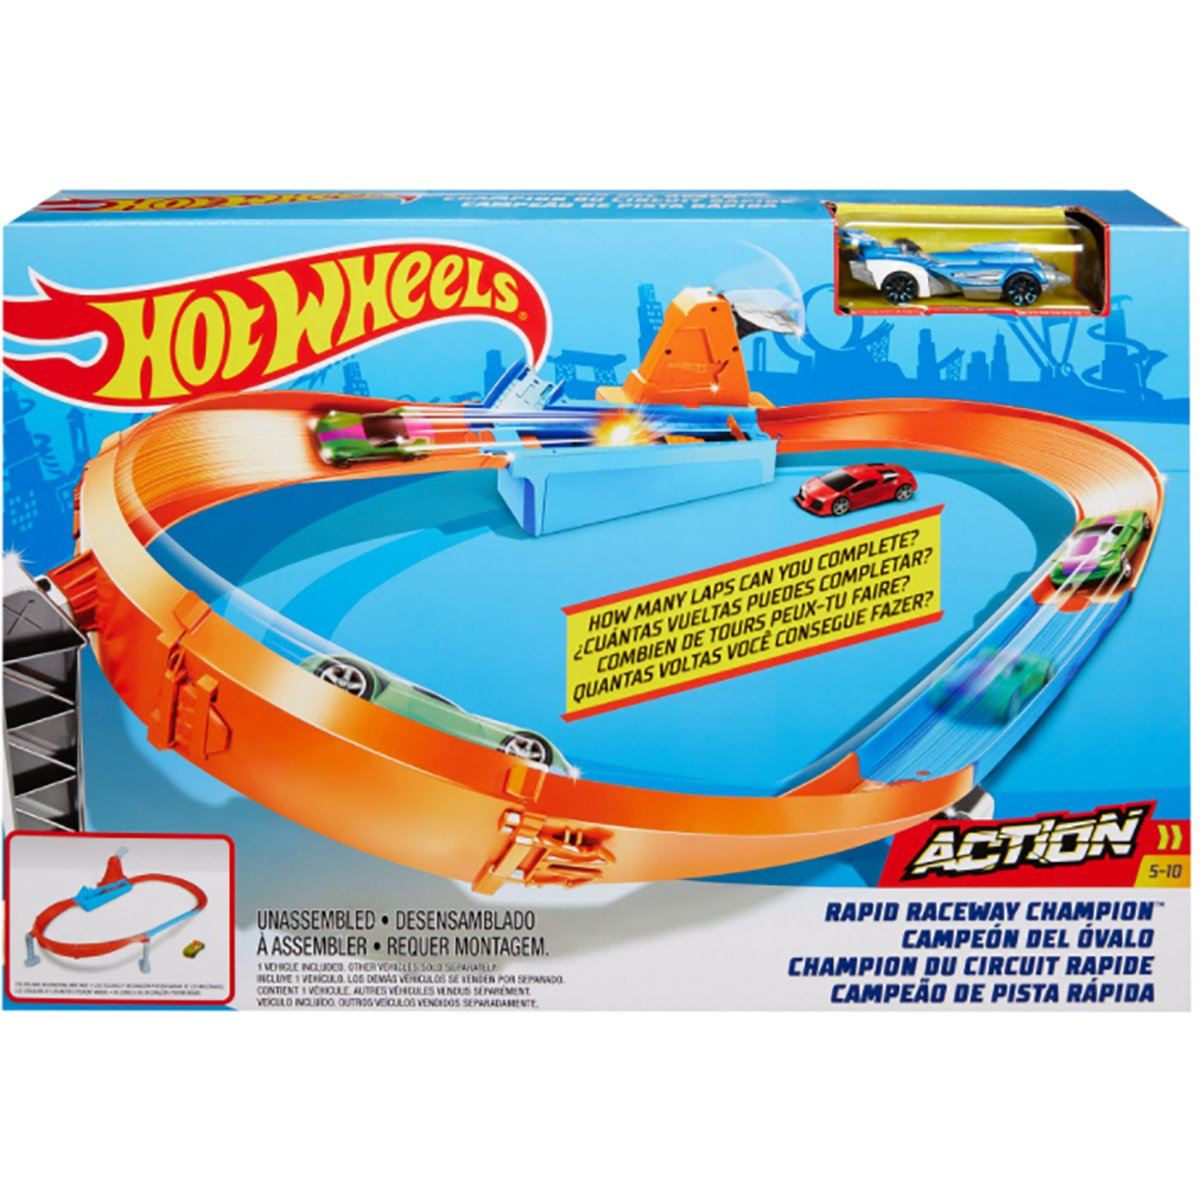 Set de joaca Circuit cu obstacole Hot Wheels, Rapid Raceway Champion GJM75